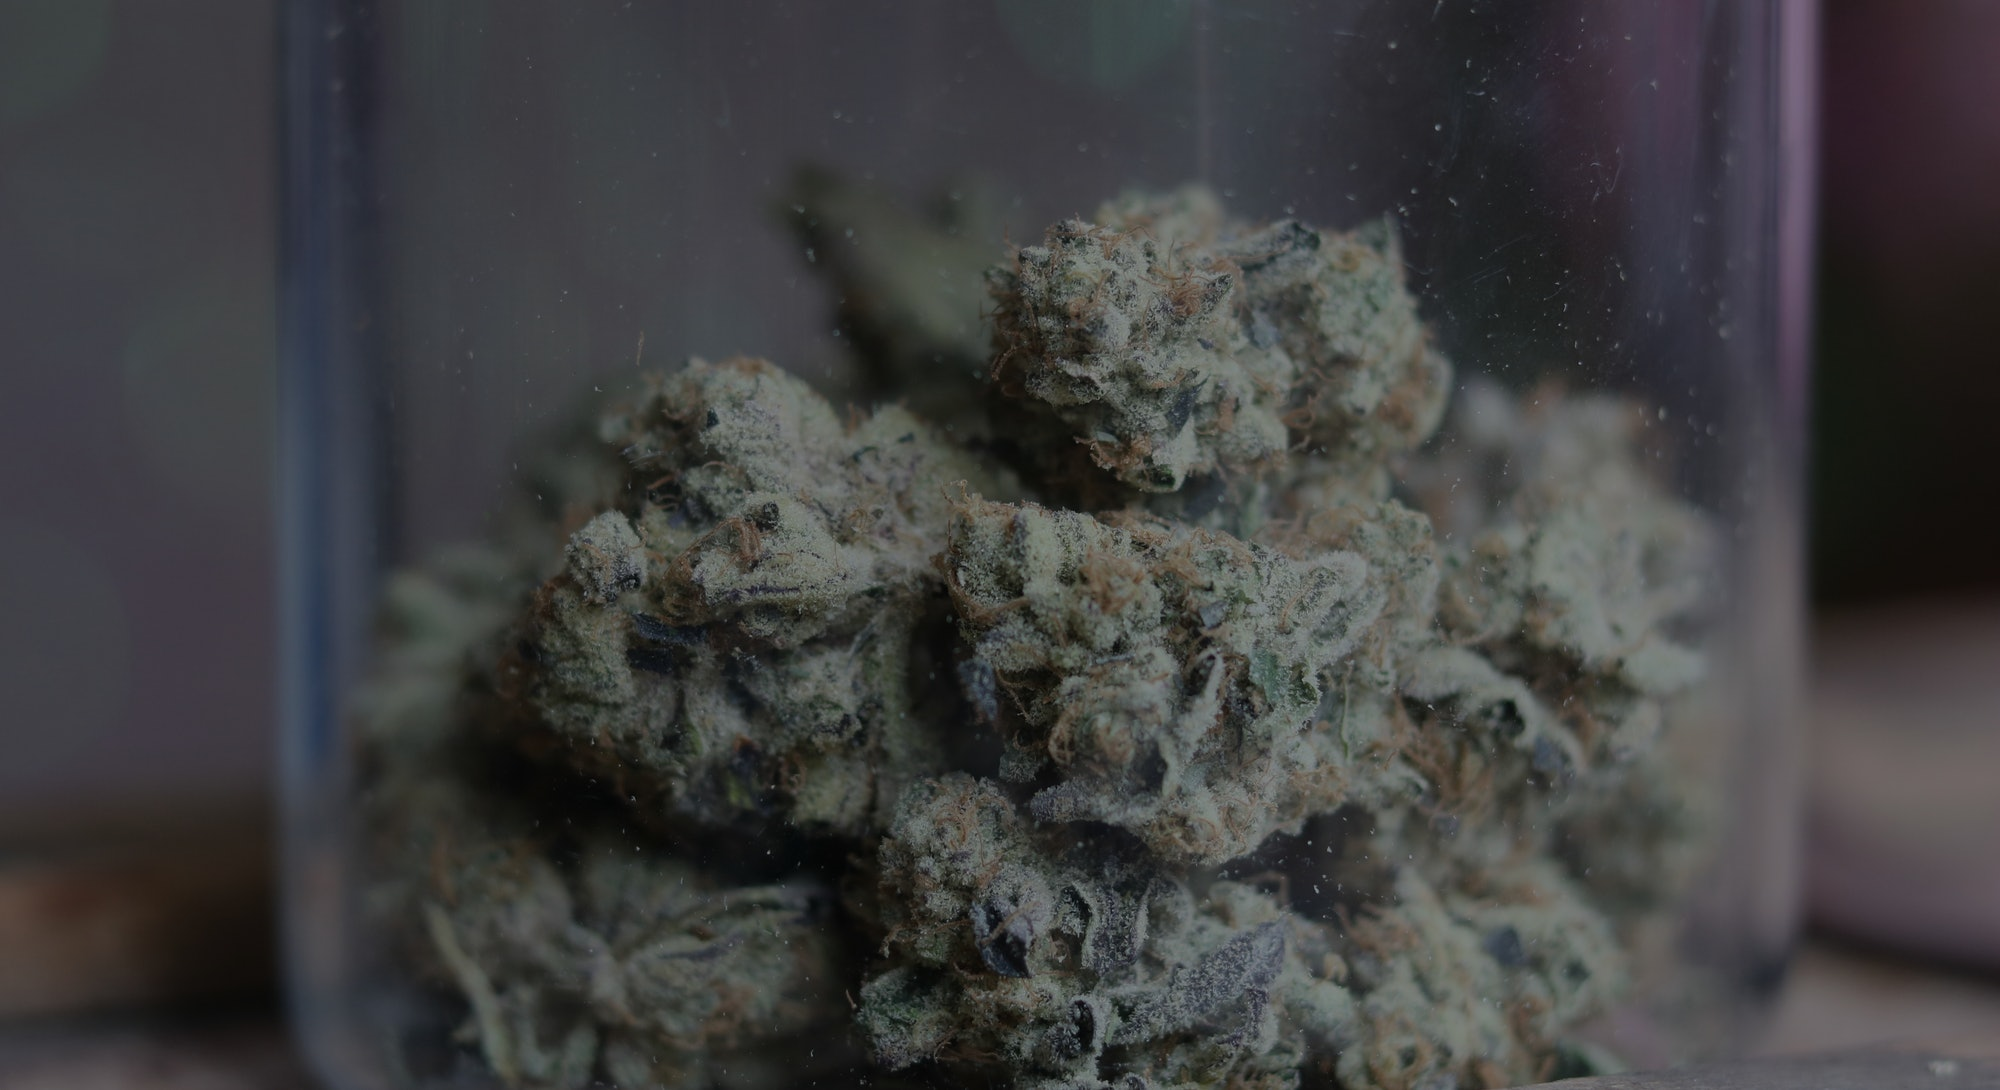 A up close photograph of an isolated glass jar of cannabis with a blurred background. Crystal tricho...